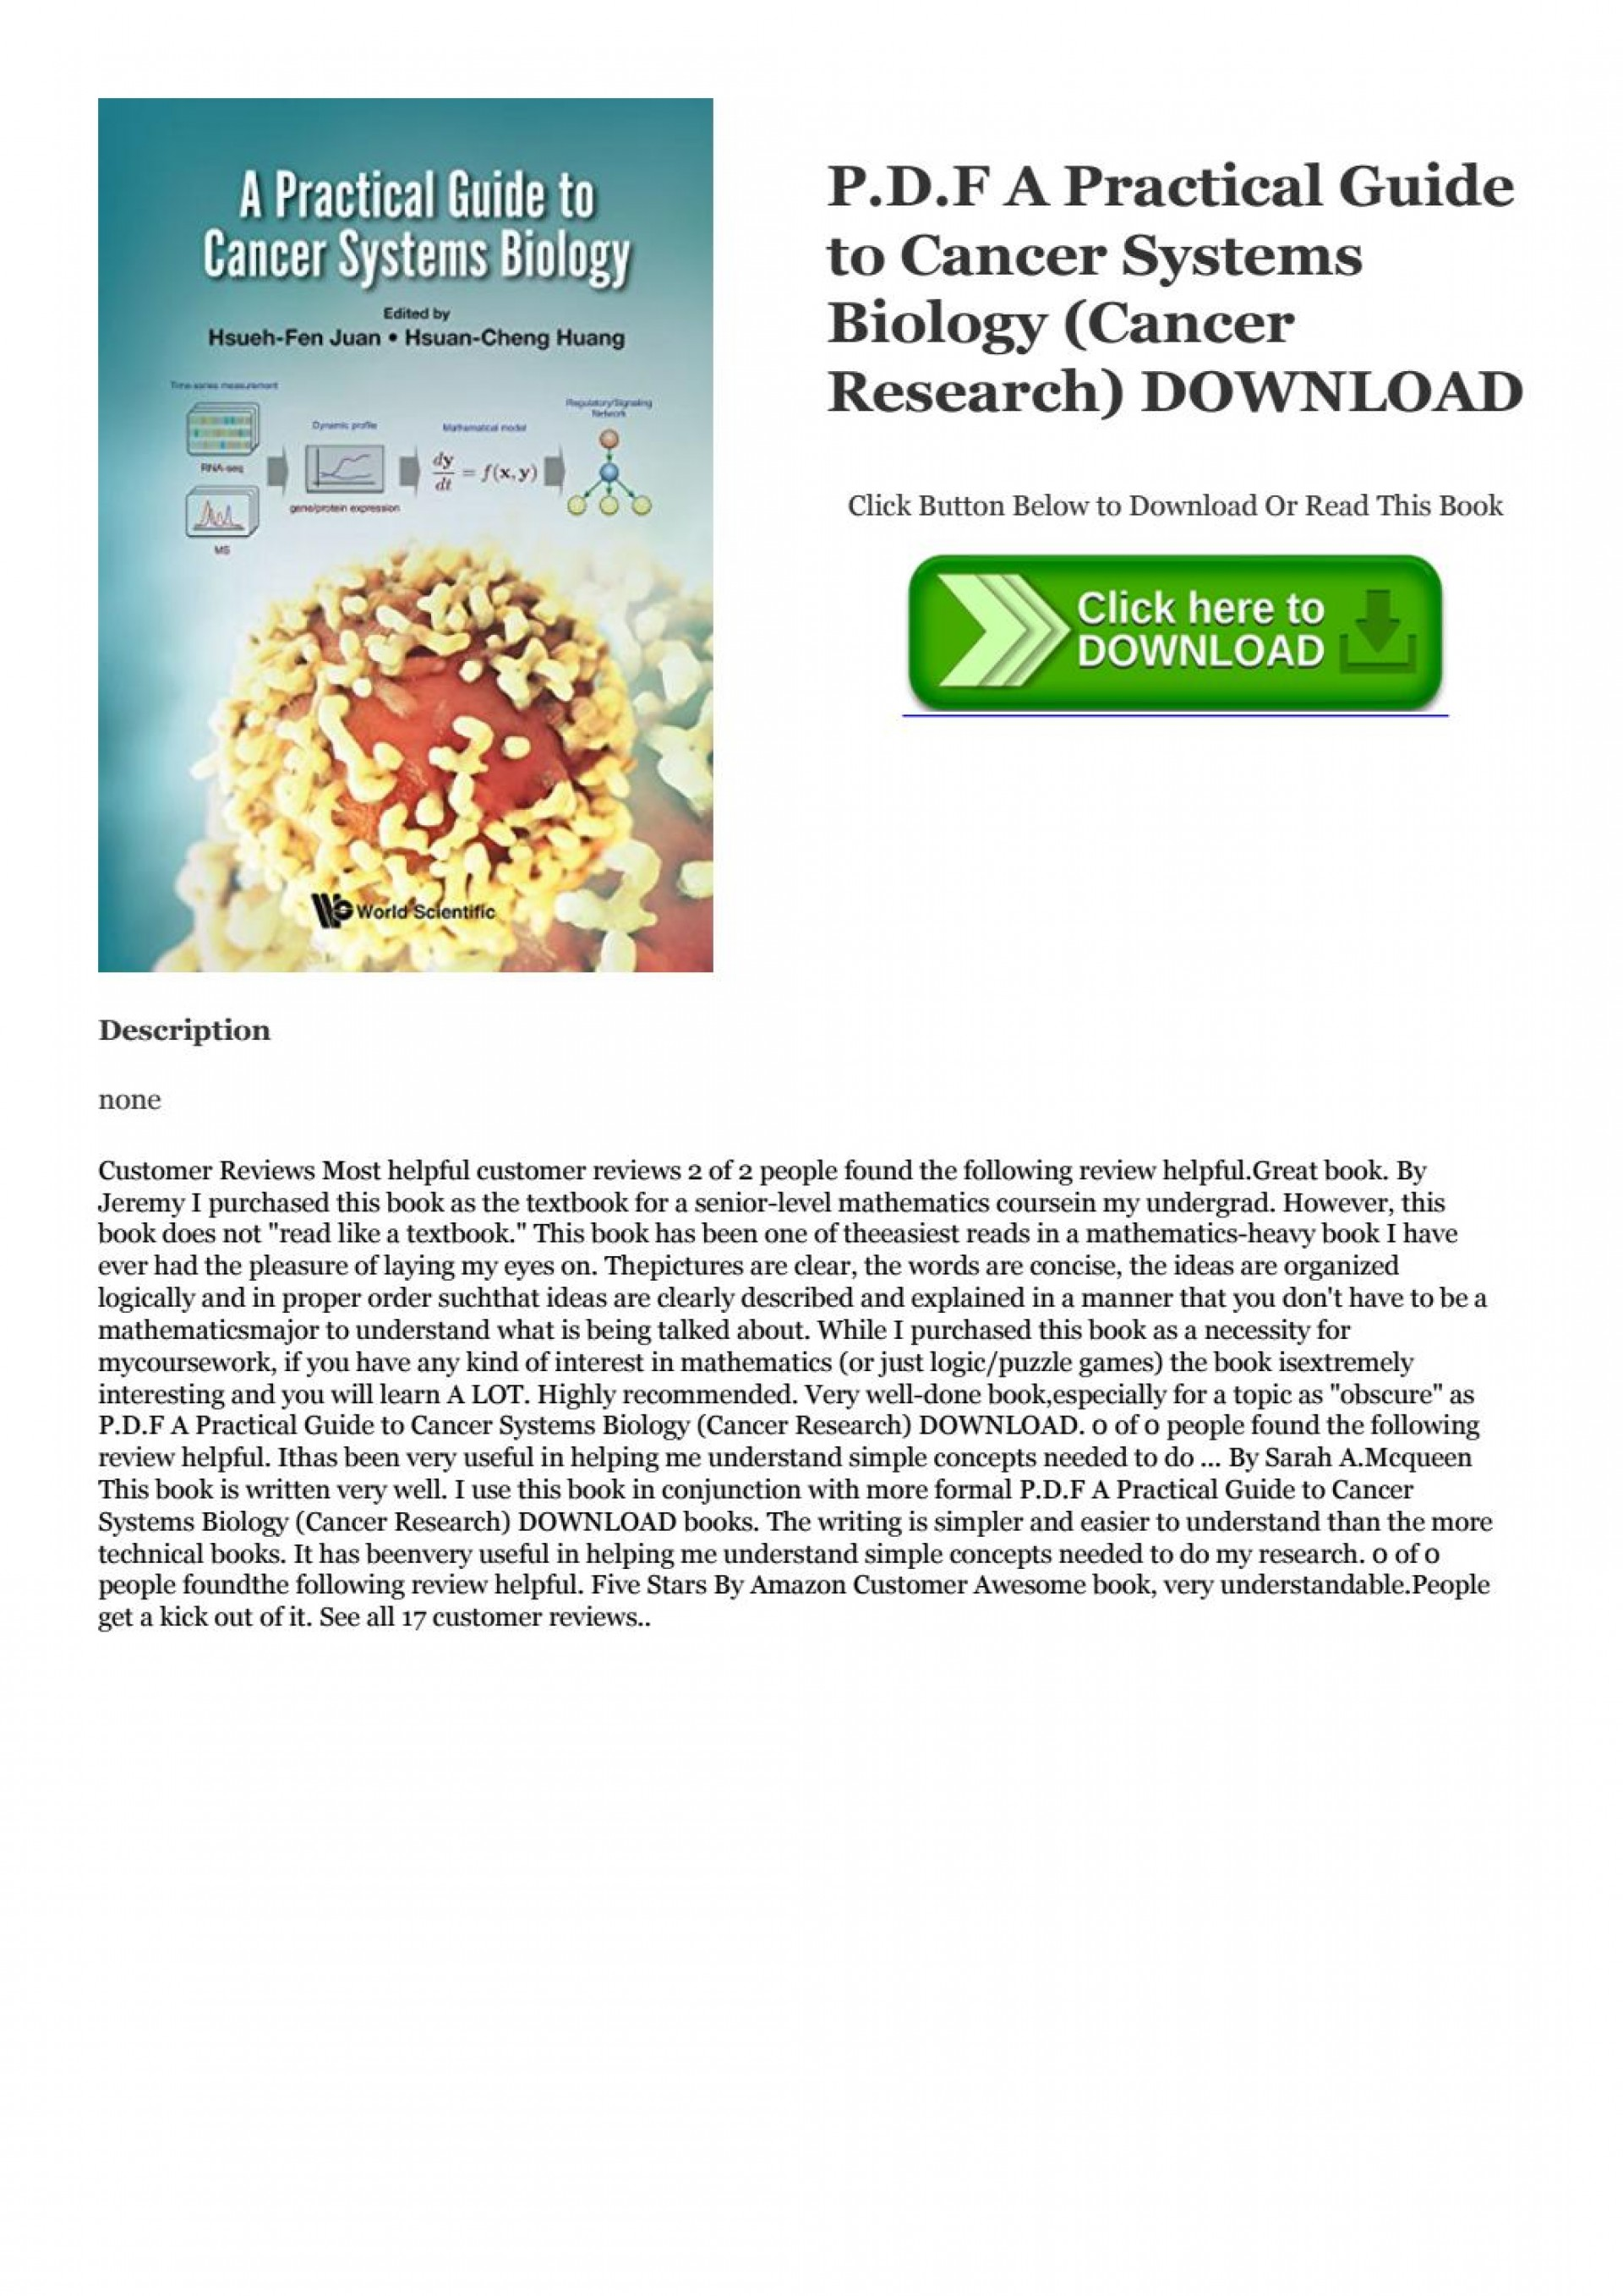 014 Page 1 Cancer Researchs Pdf Fascinating Research Papers Lung Paper Colon Skin 1920